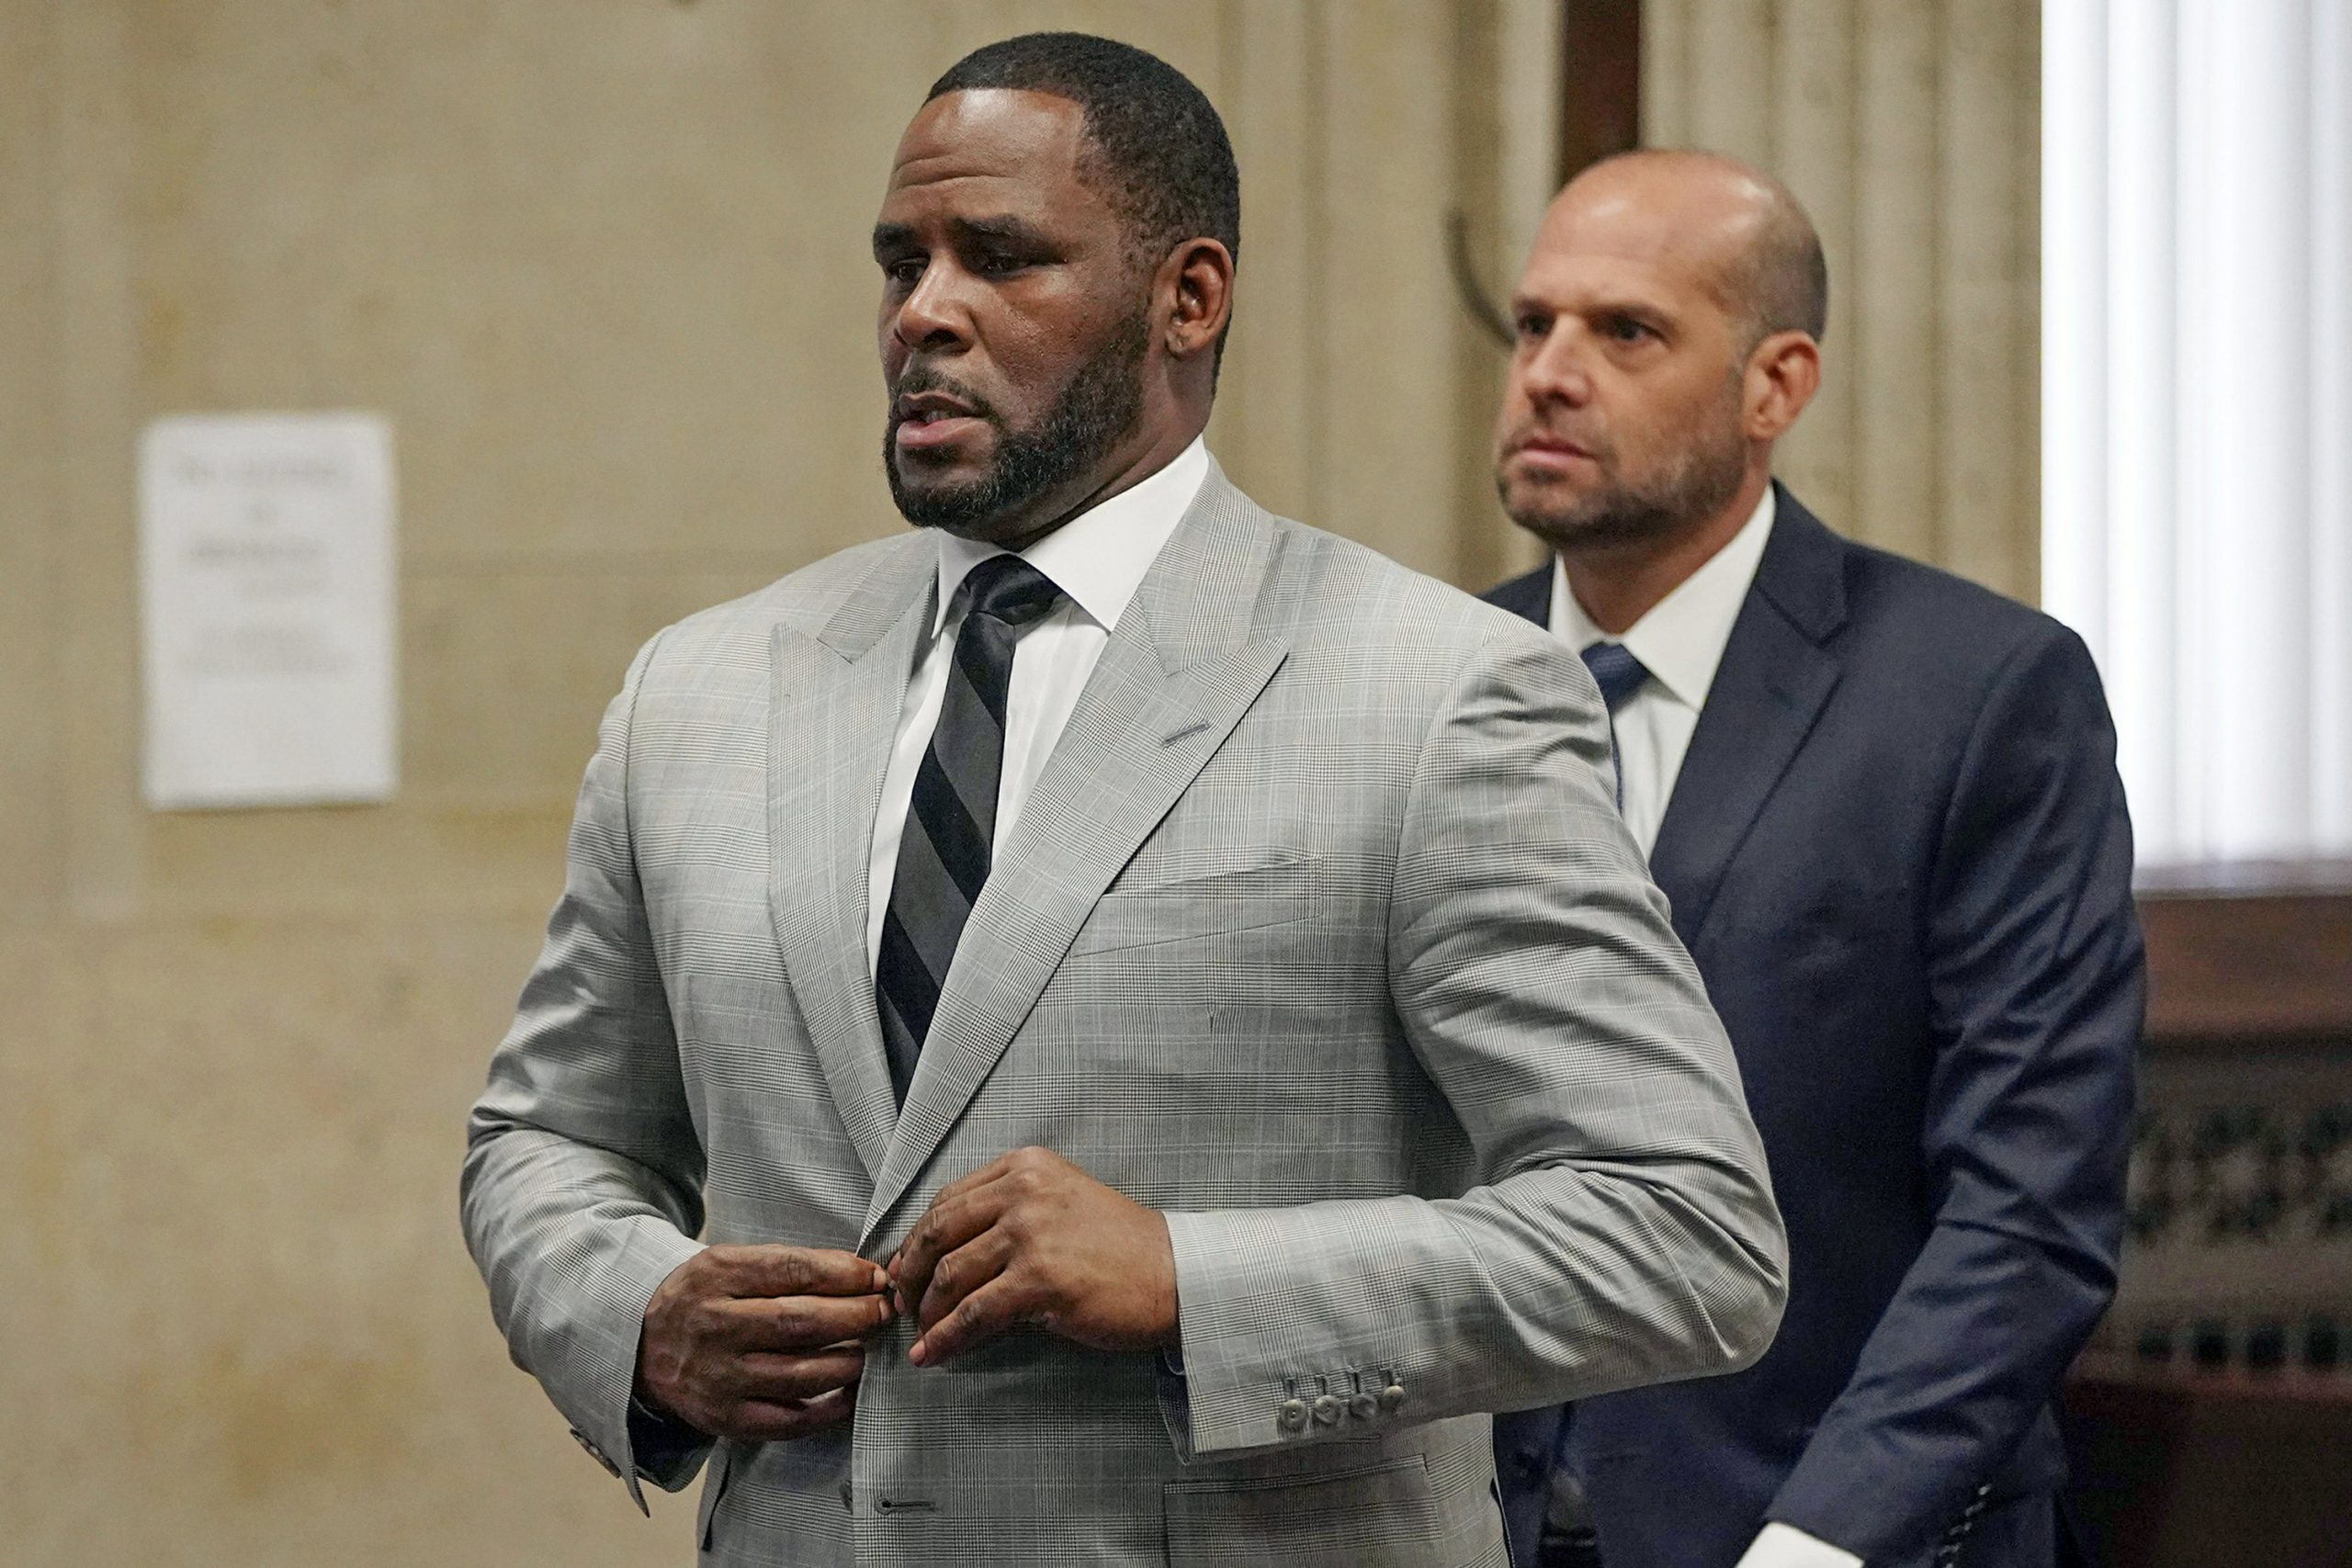 Singer R. Kelly seen Jamming to his own Music in Court! Here's What Happened!